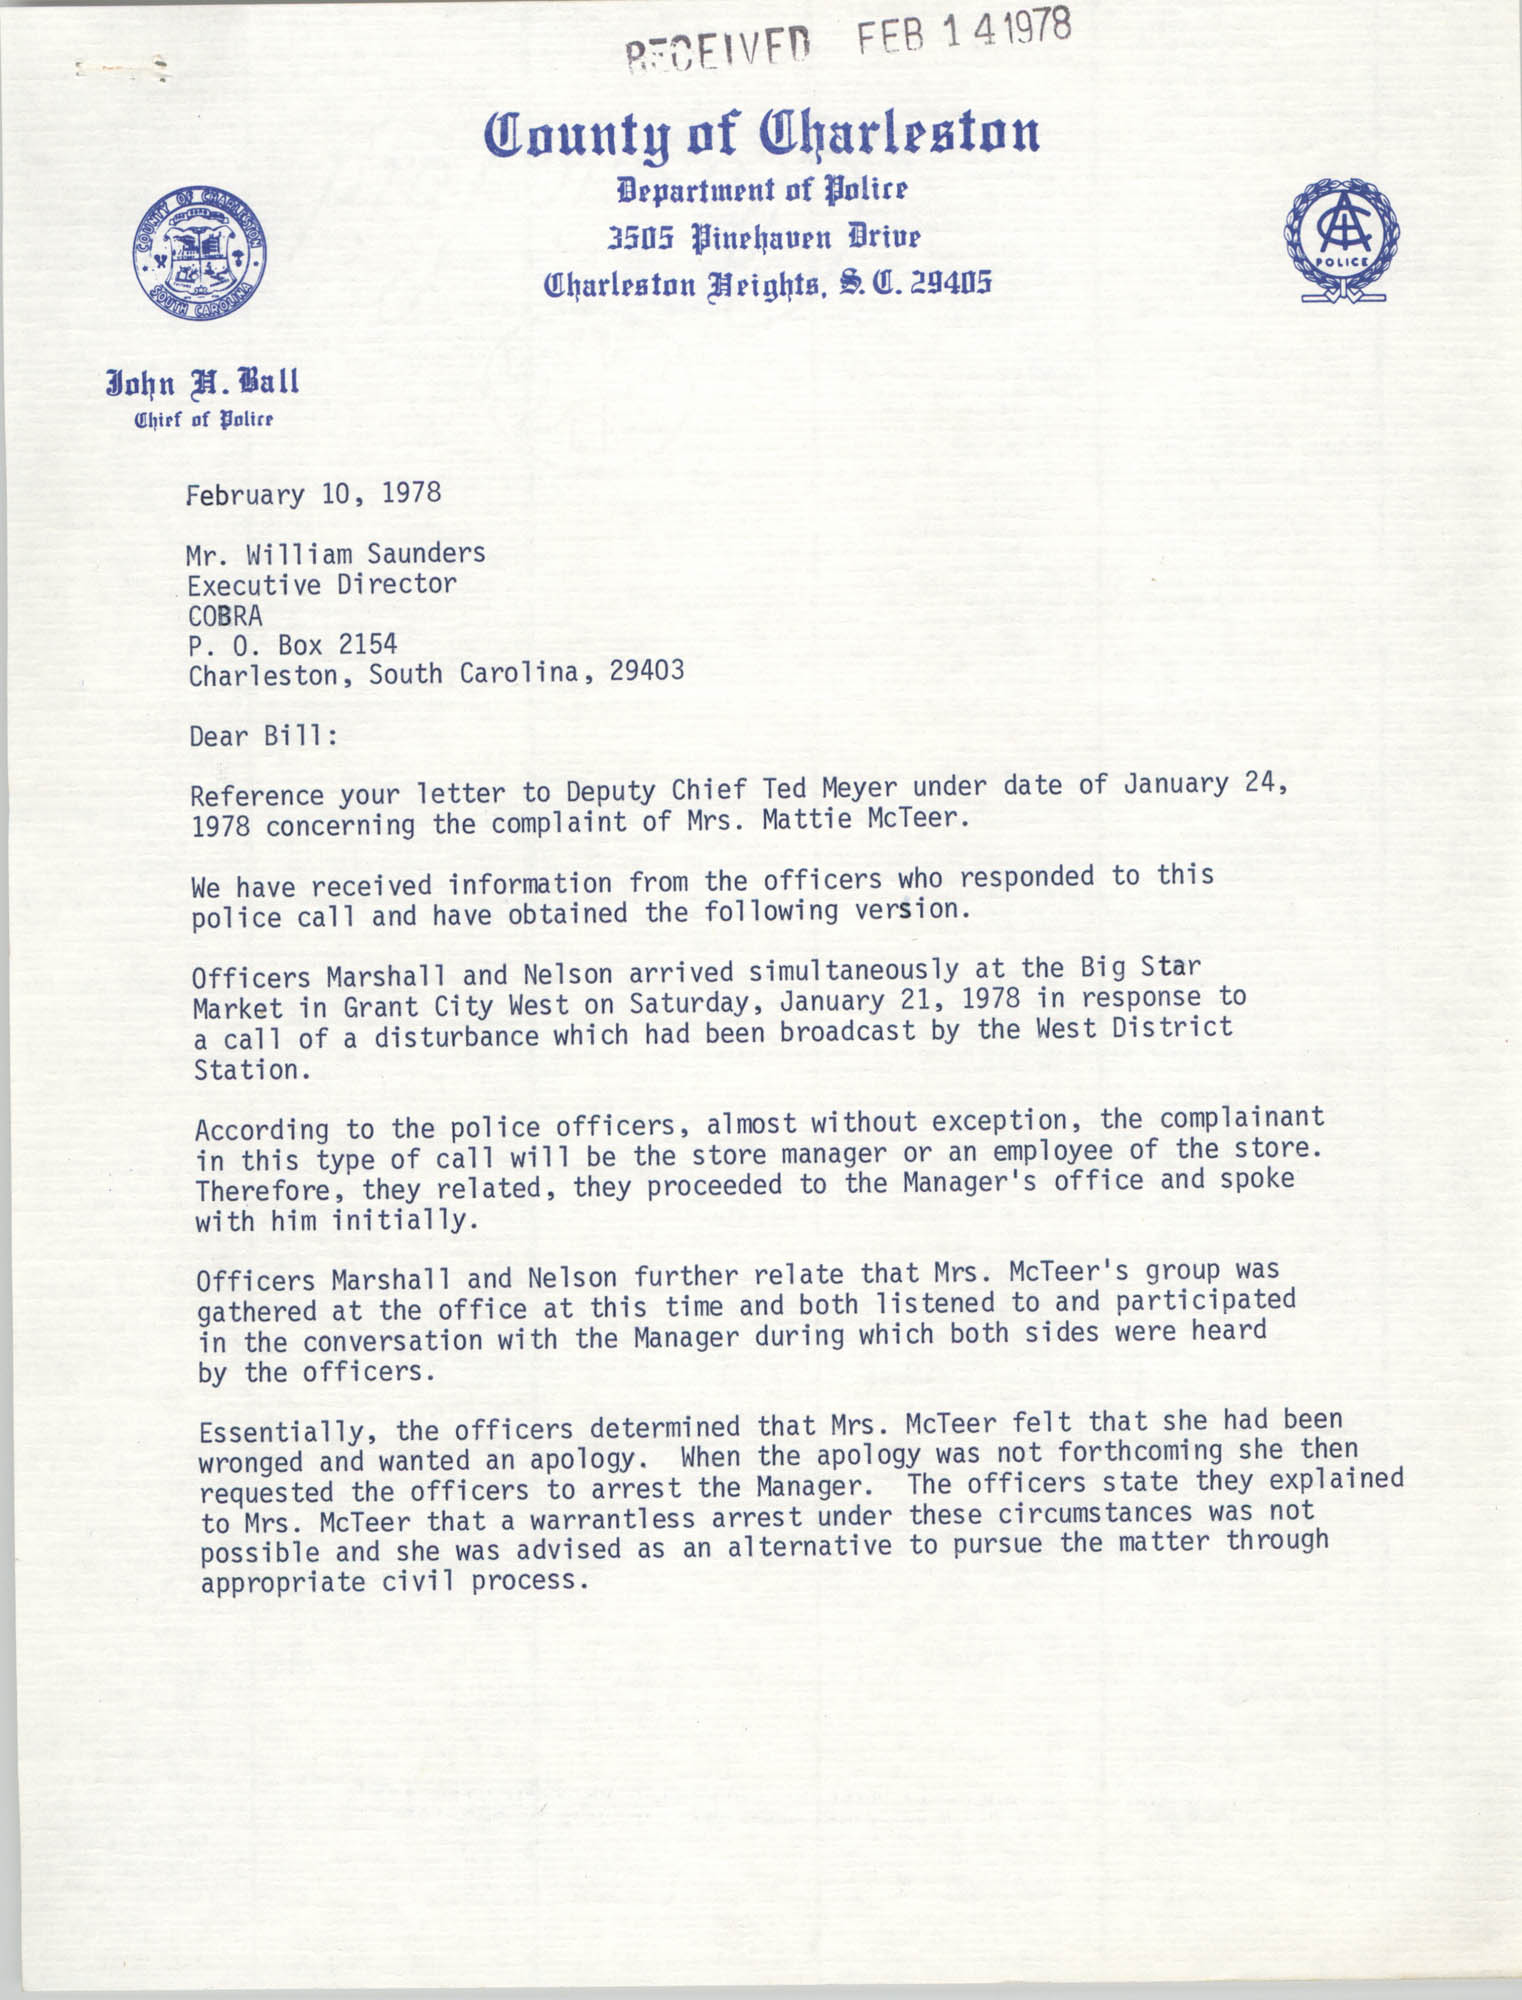 Letter from John H. Ball to William Saunders, February 10, 1978